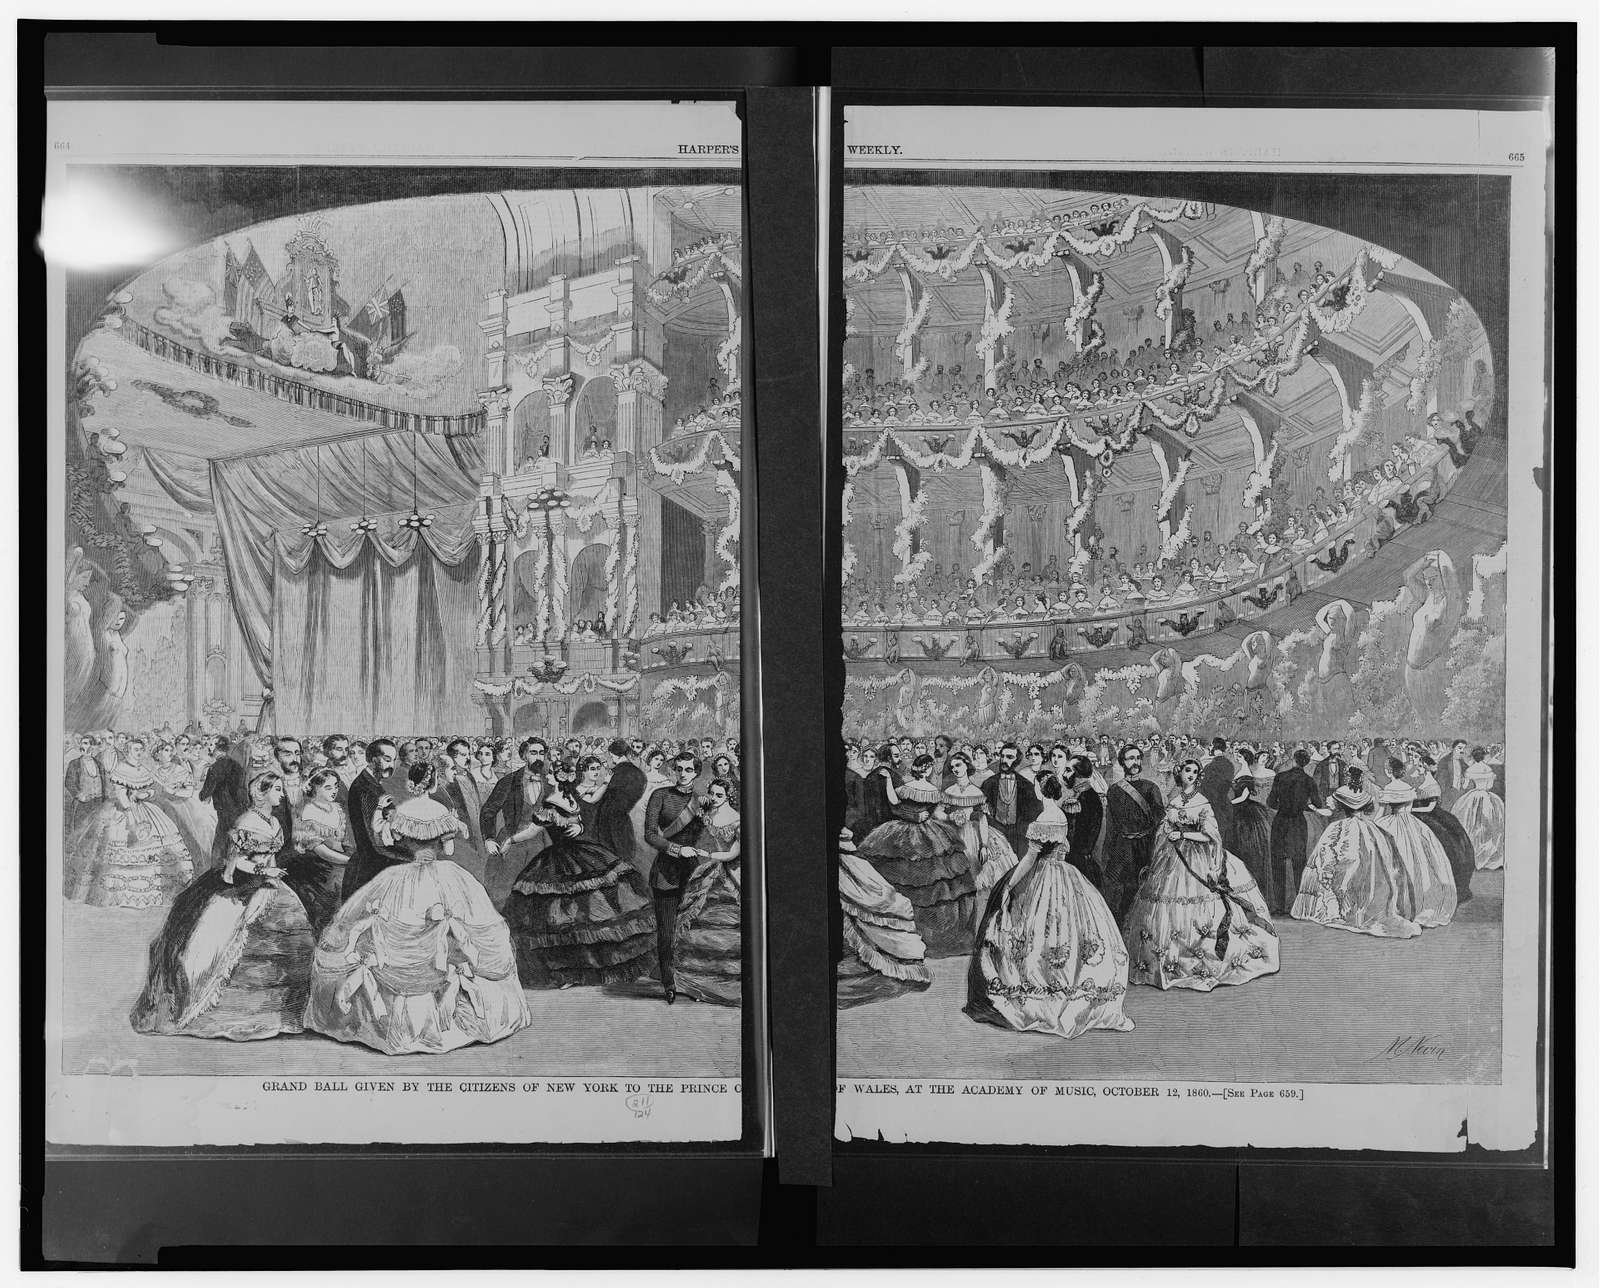 Grand ball given by the citizens of New York to the Prince of Wales, at the Academy of Music, October 12, 1860